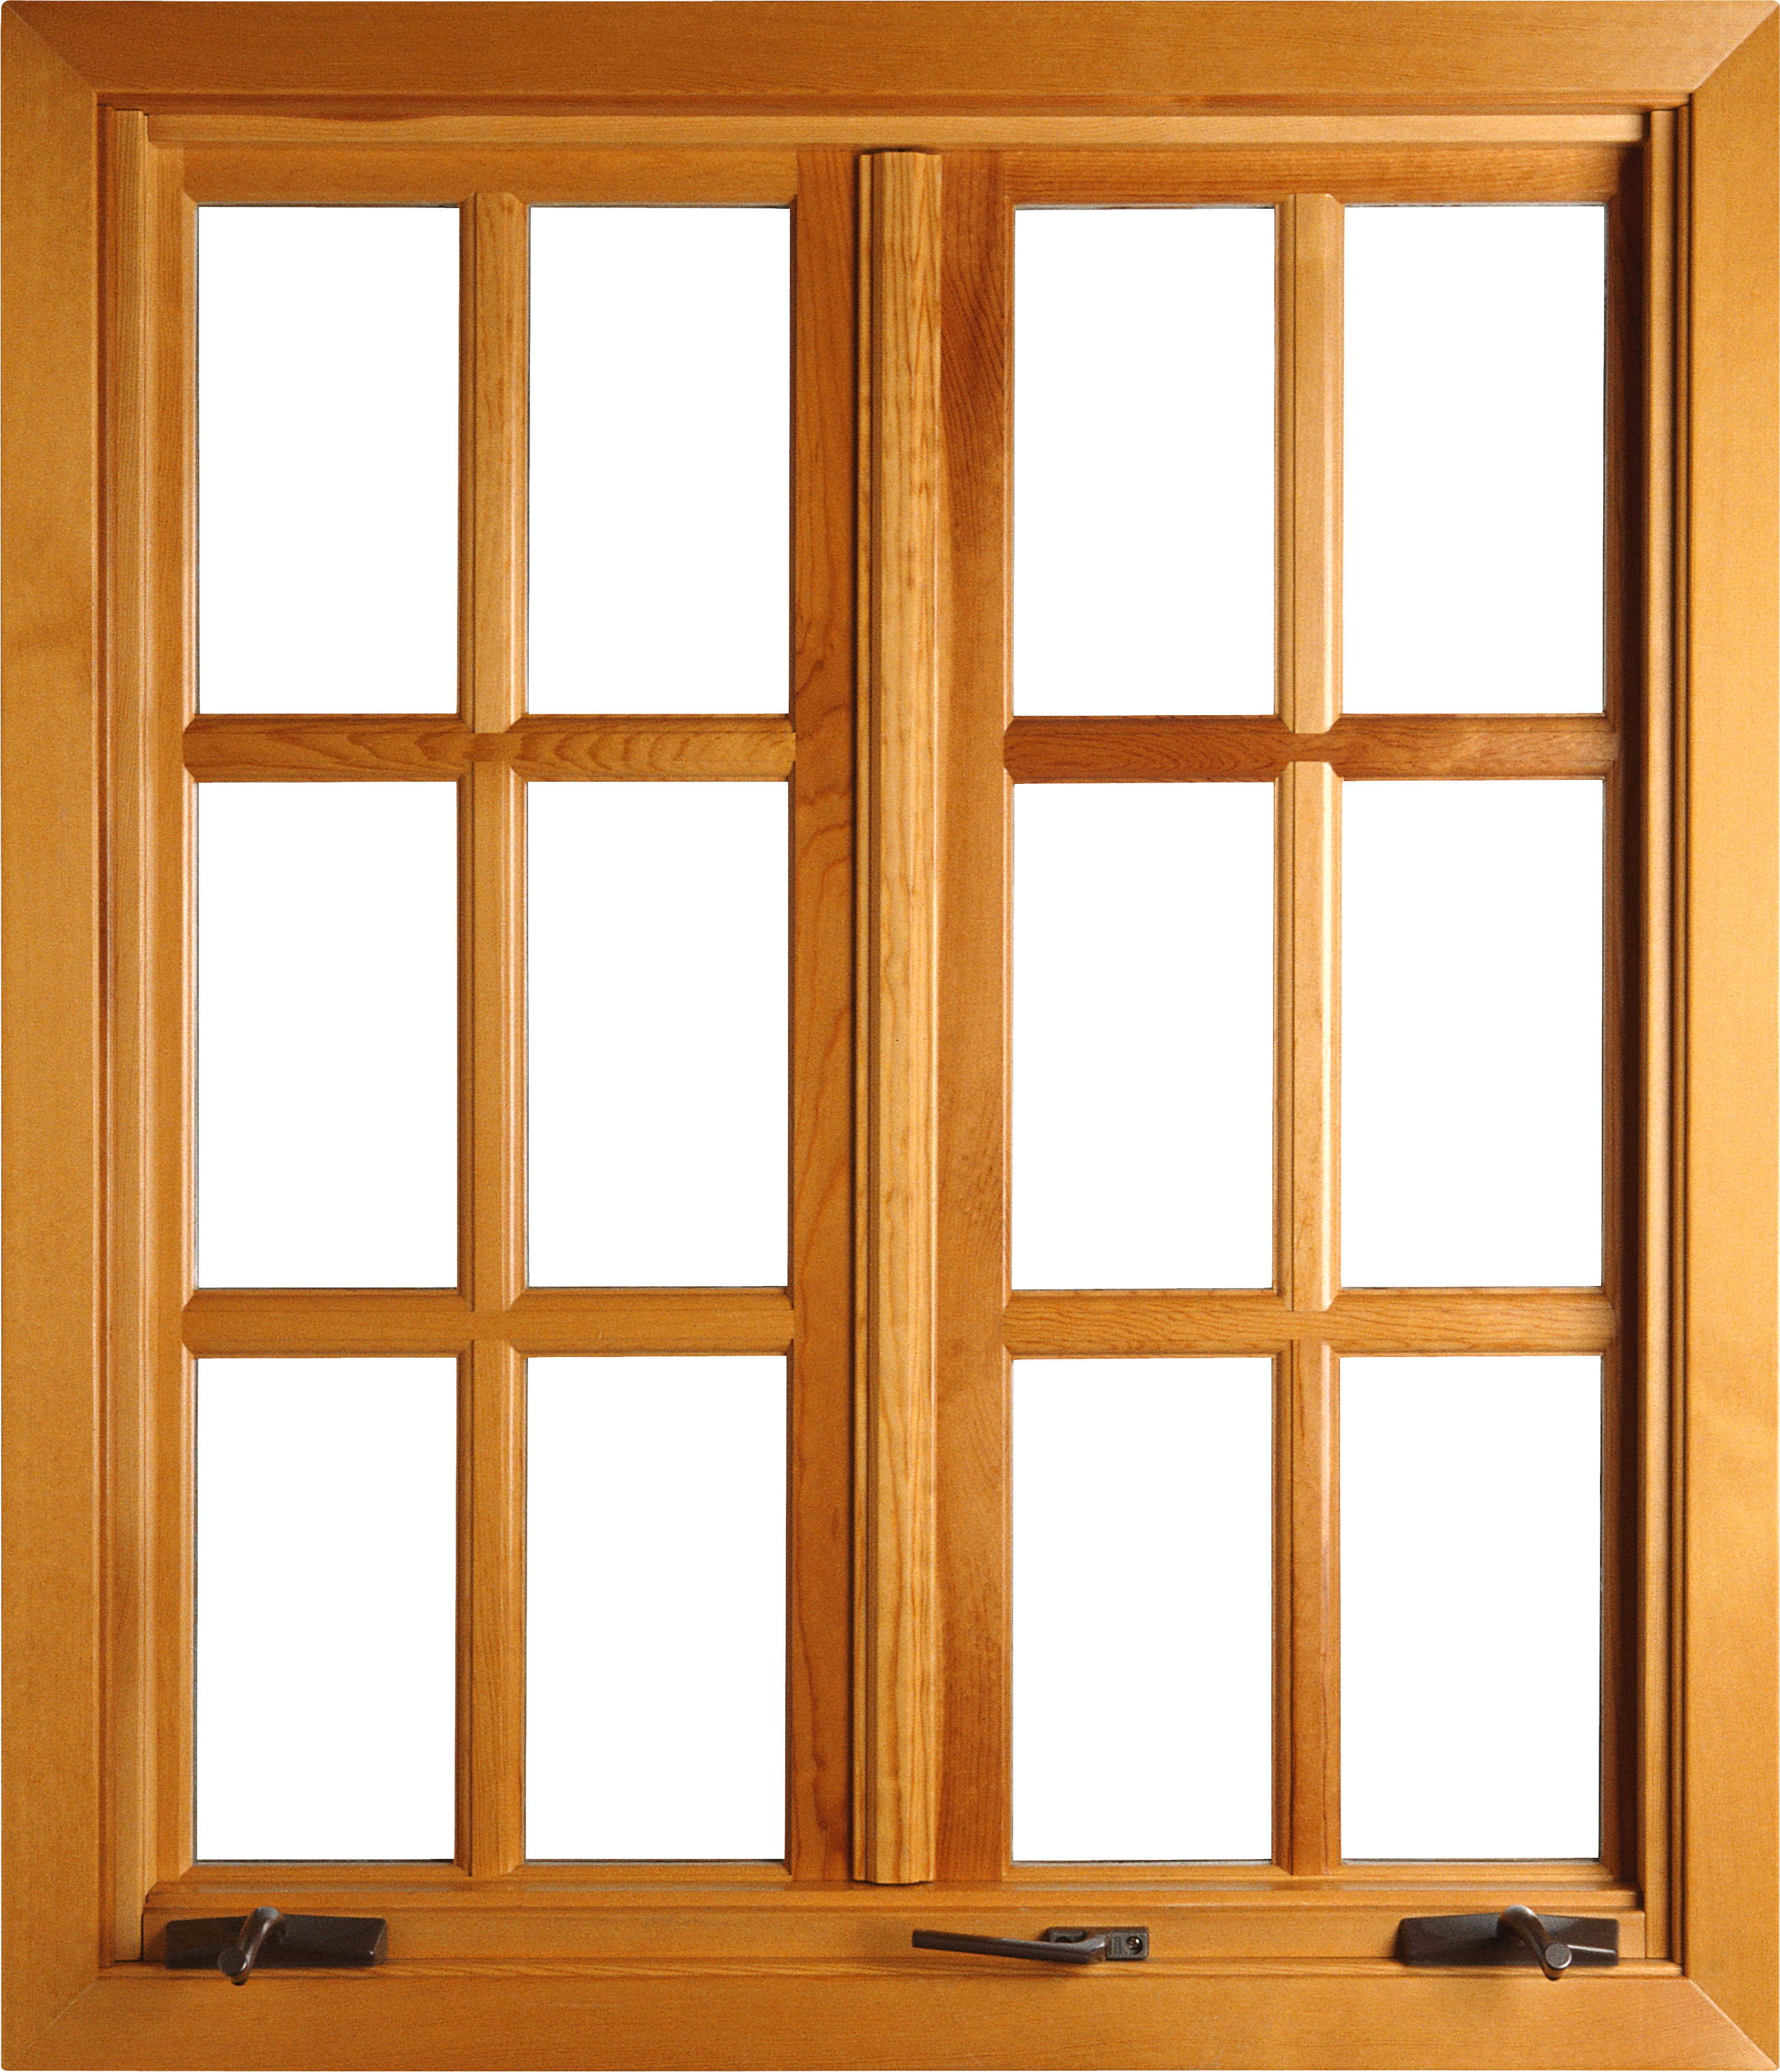 Goal goodwinmetals co. Wooden window frame png